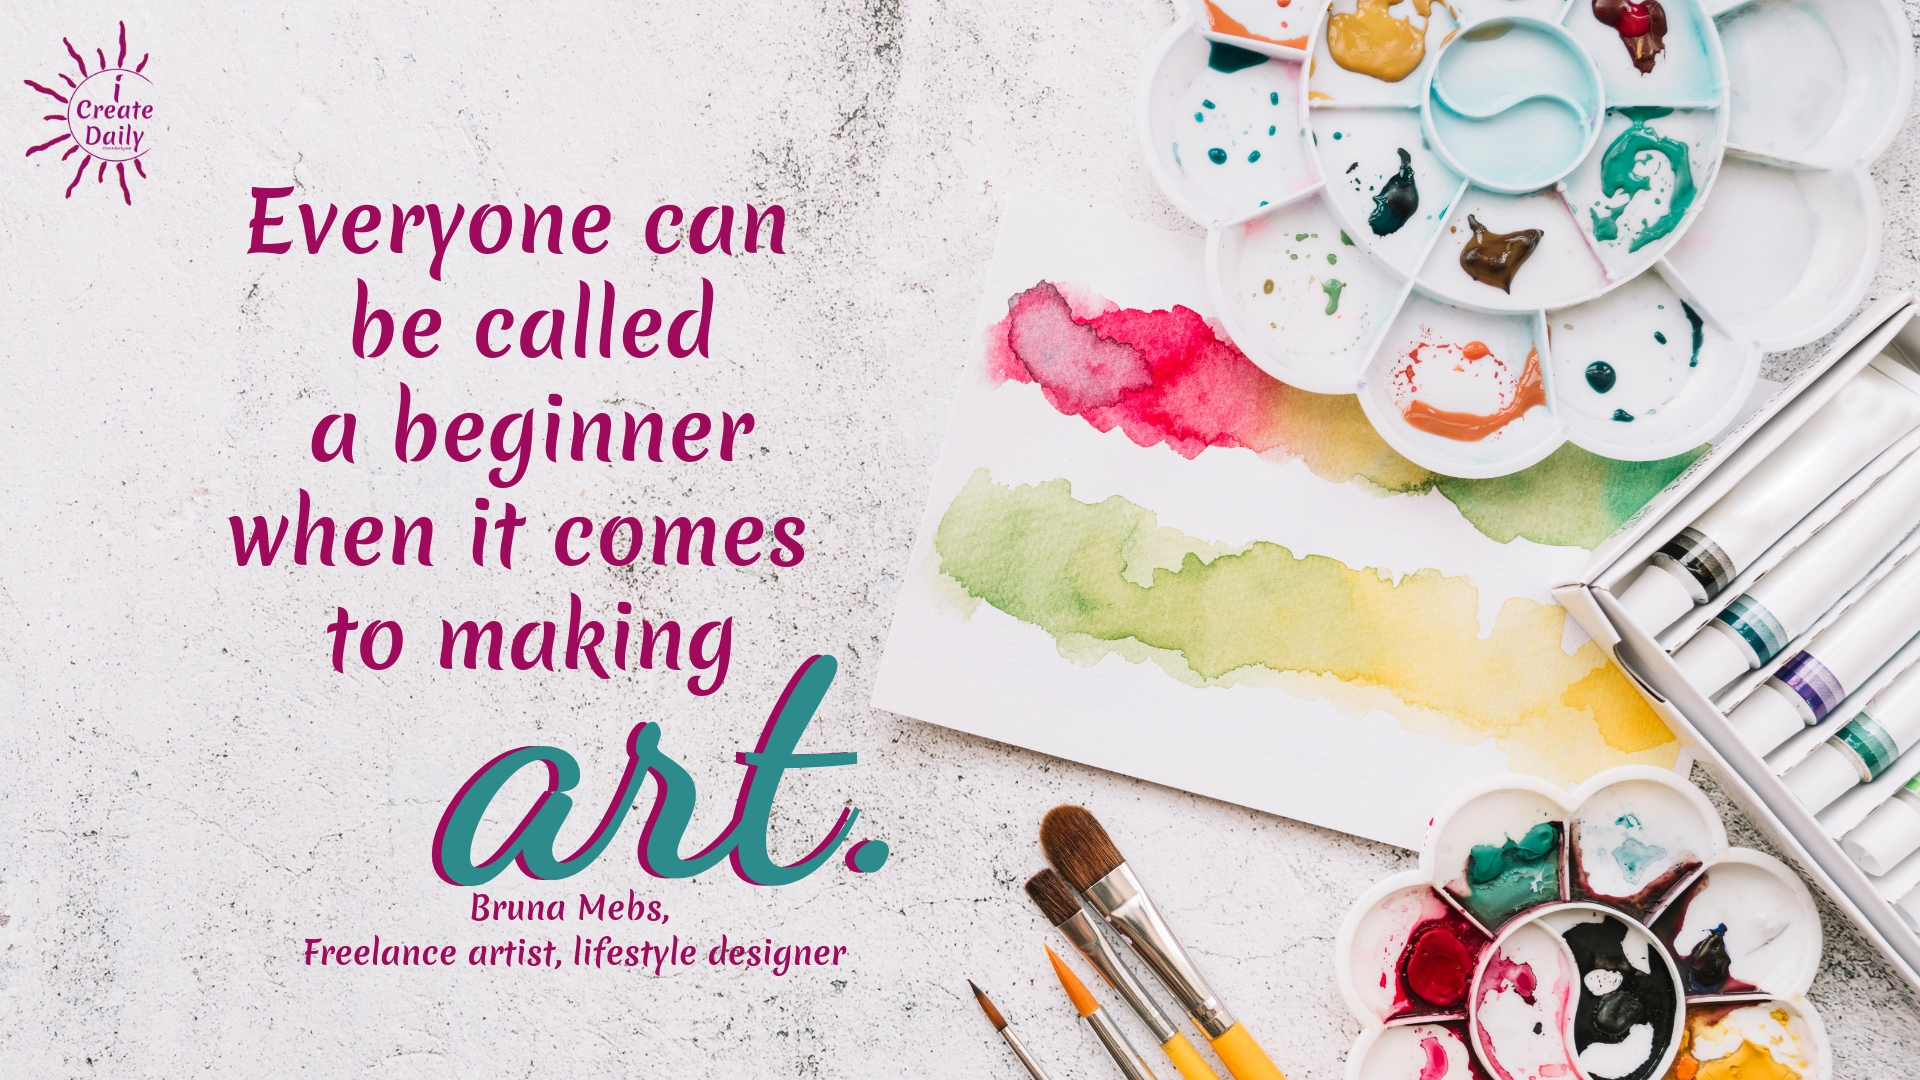 """Everyone can be called a beginner when it comes to making art."" ~Bruna Mebs, Freelance artist, lifestyle designer, artist entrepreneur #ArtistQuote #MeaningfulQuotes #BeginnersMindQuote #CreatorsQuotes #iCreateDaily"